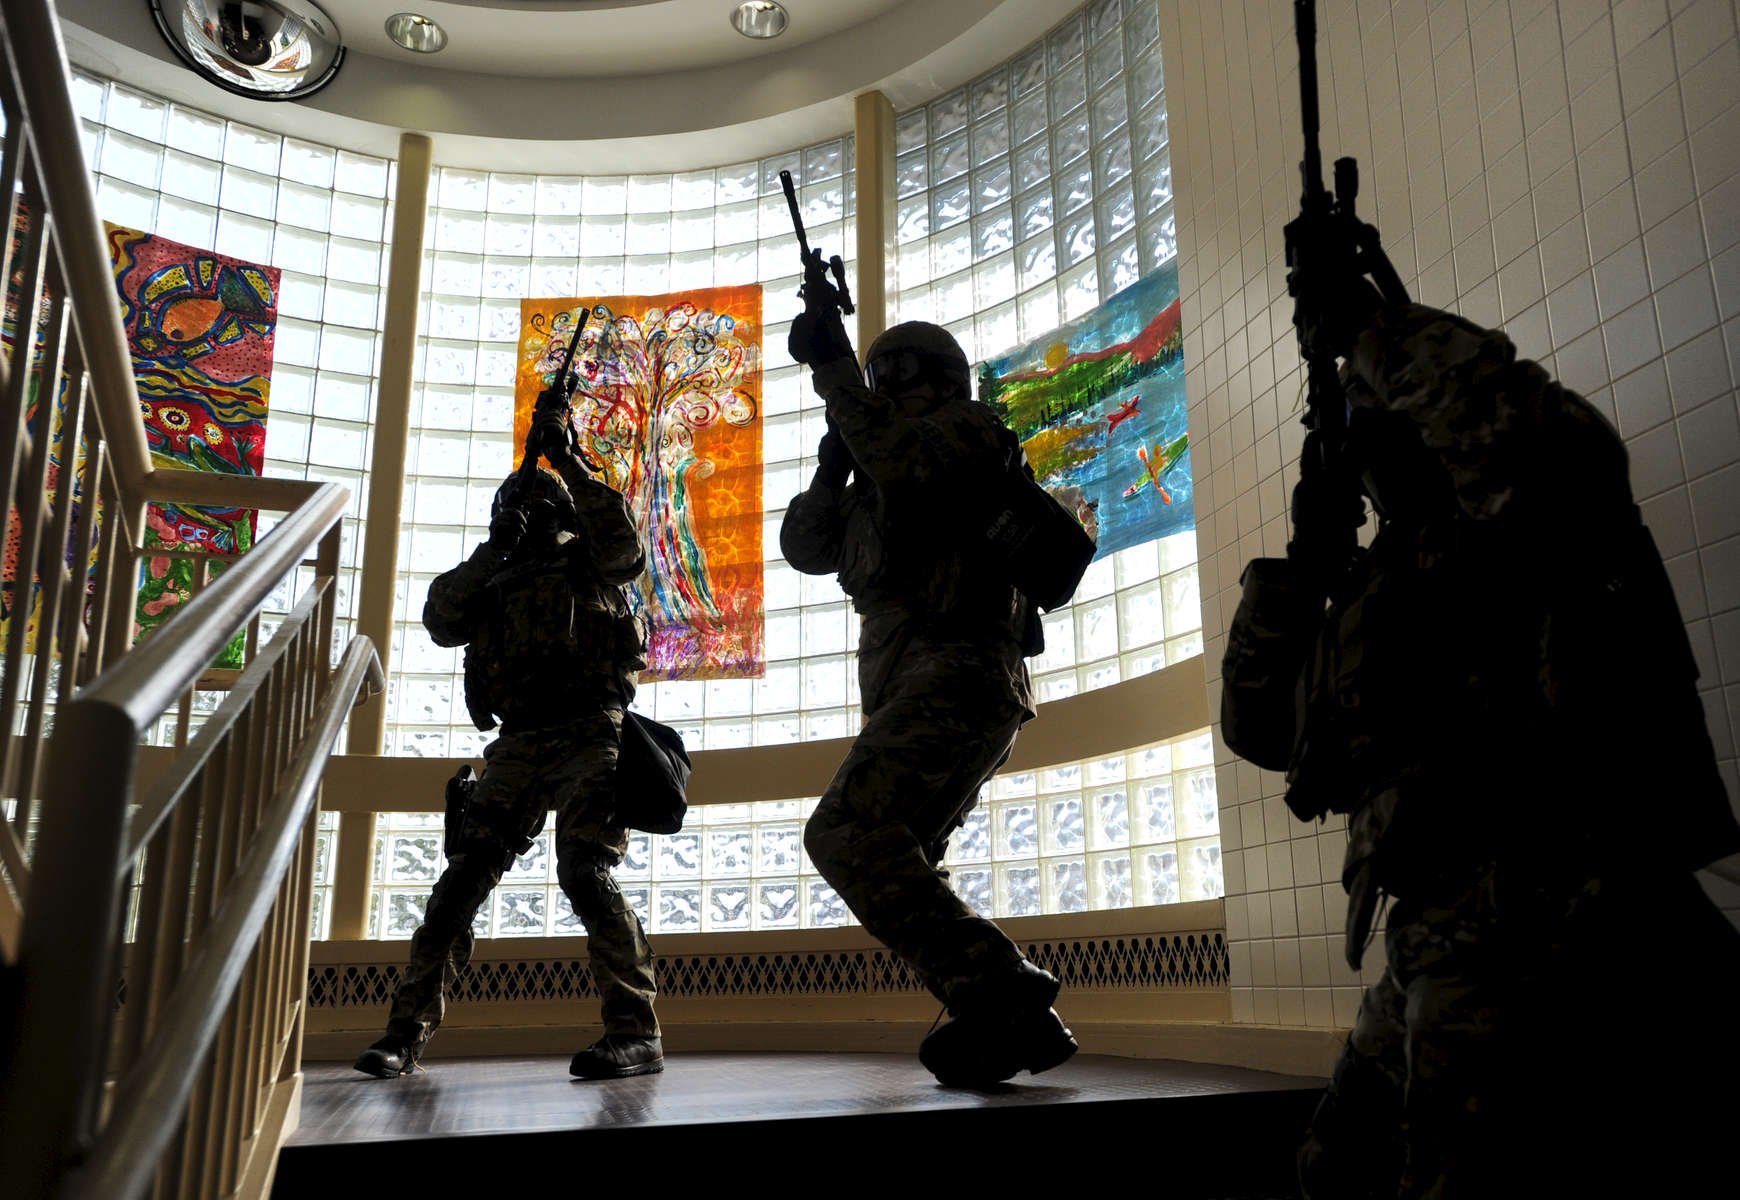 Jason McKibben - jmckibben@poststar.comMembers of the new Warren County Sheriff's Office Emergency Response Team participate in an {quote}active shooter{quote} drill at William H. Barton Intermediate School in Queensbury Sunday, October 17, 2010. The drill included shooting victims and a mock gunman that police had to locate and disarm. The victims were then transported to the Glens Falls Hospital where staff practiced their response to such an event.